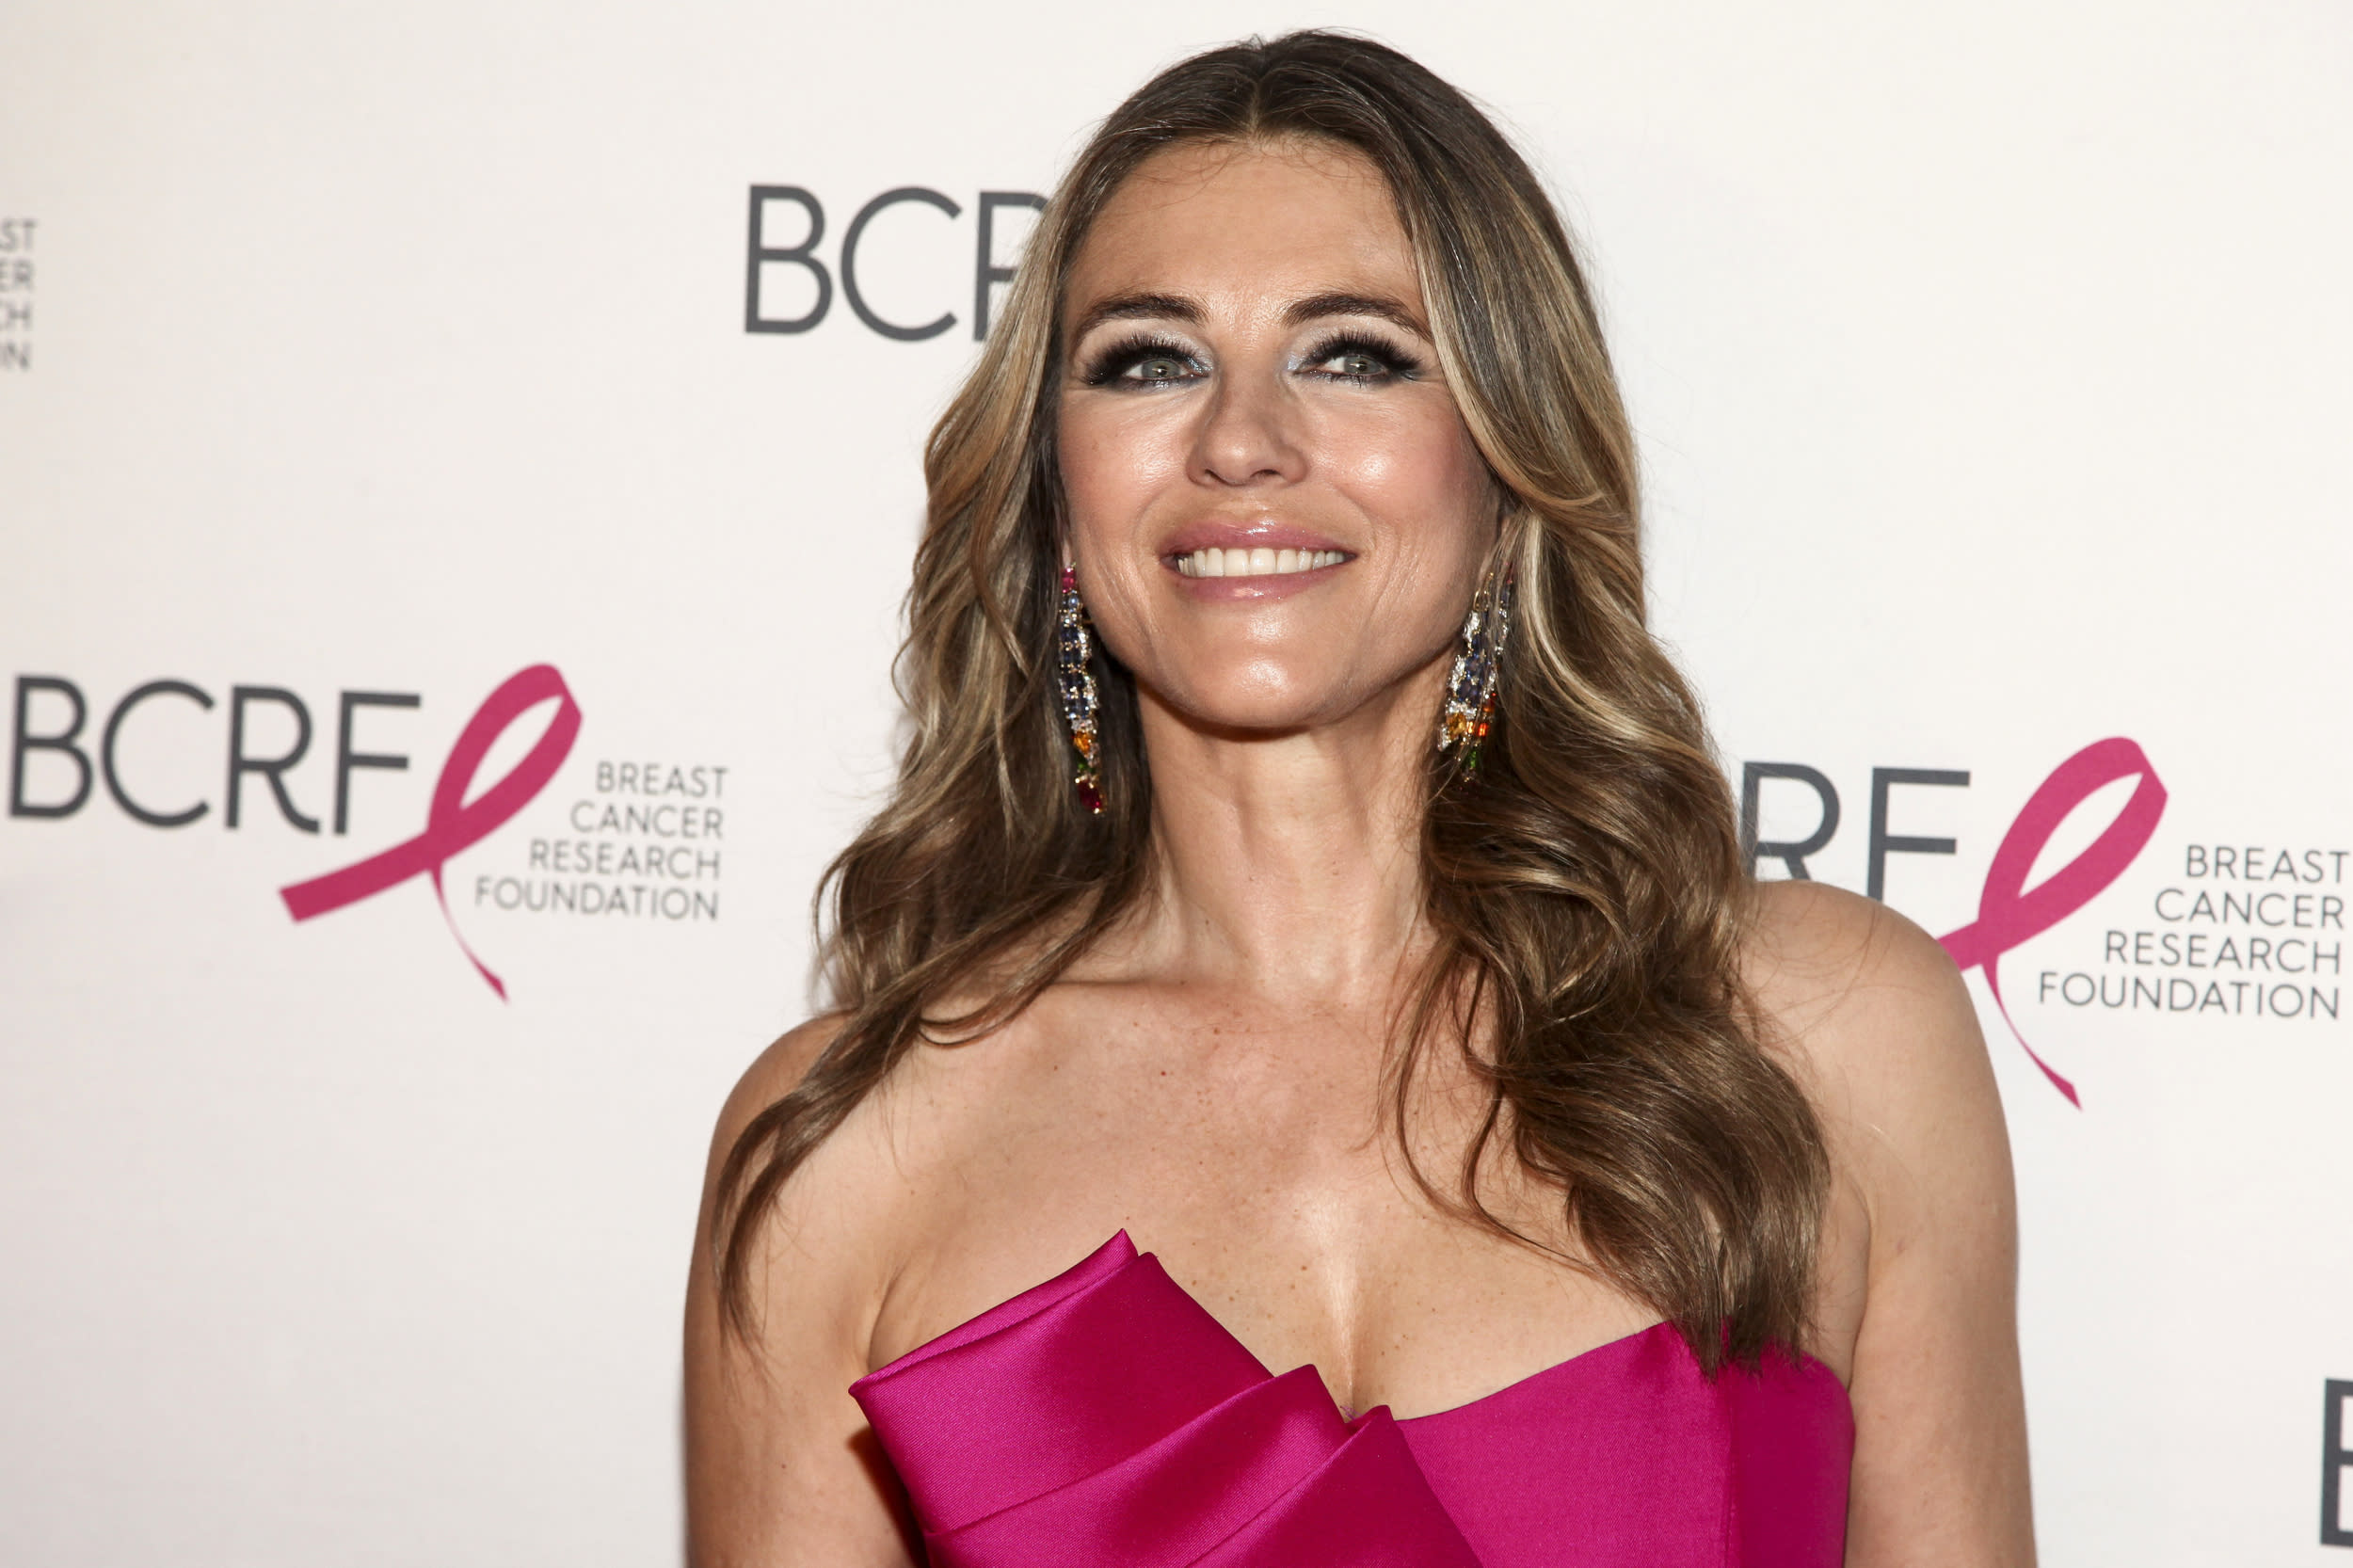 """Elizabeth Hurley attends the Breast Cancer Research Foundation's """"The Hot Pink Party"""" at the Park Avenue Armory on Thursday, May 17, 2018, in New York. (Photo by Andy Kropa/Invision/AP)"""